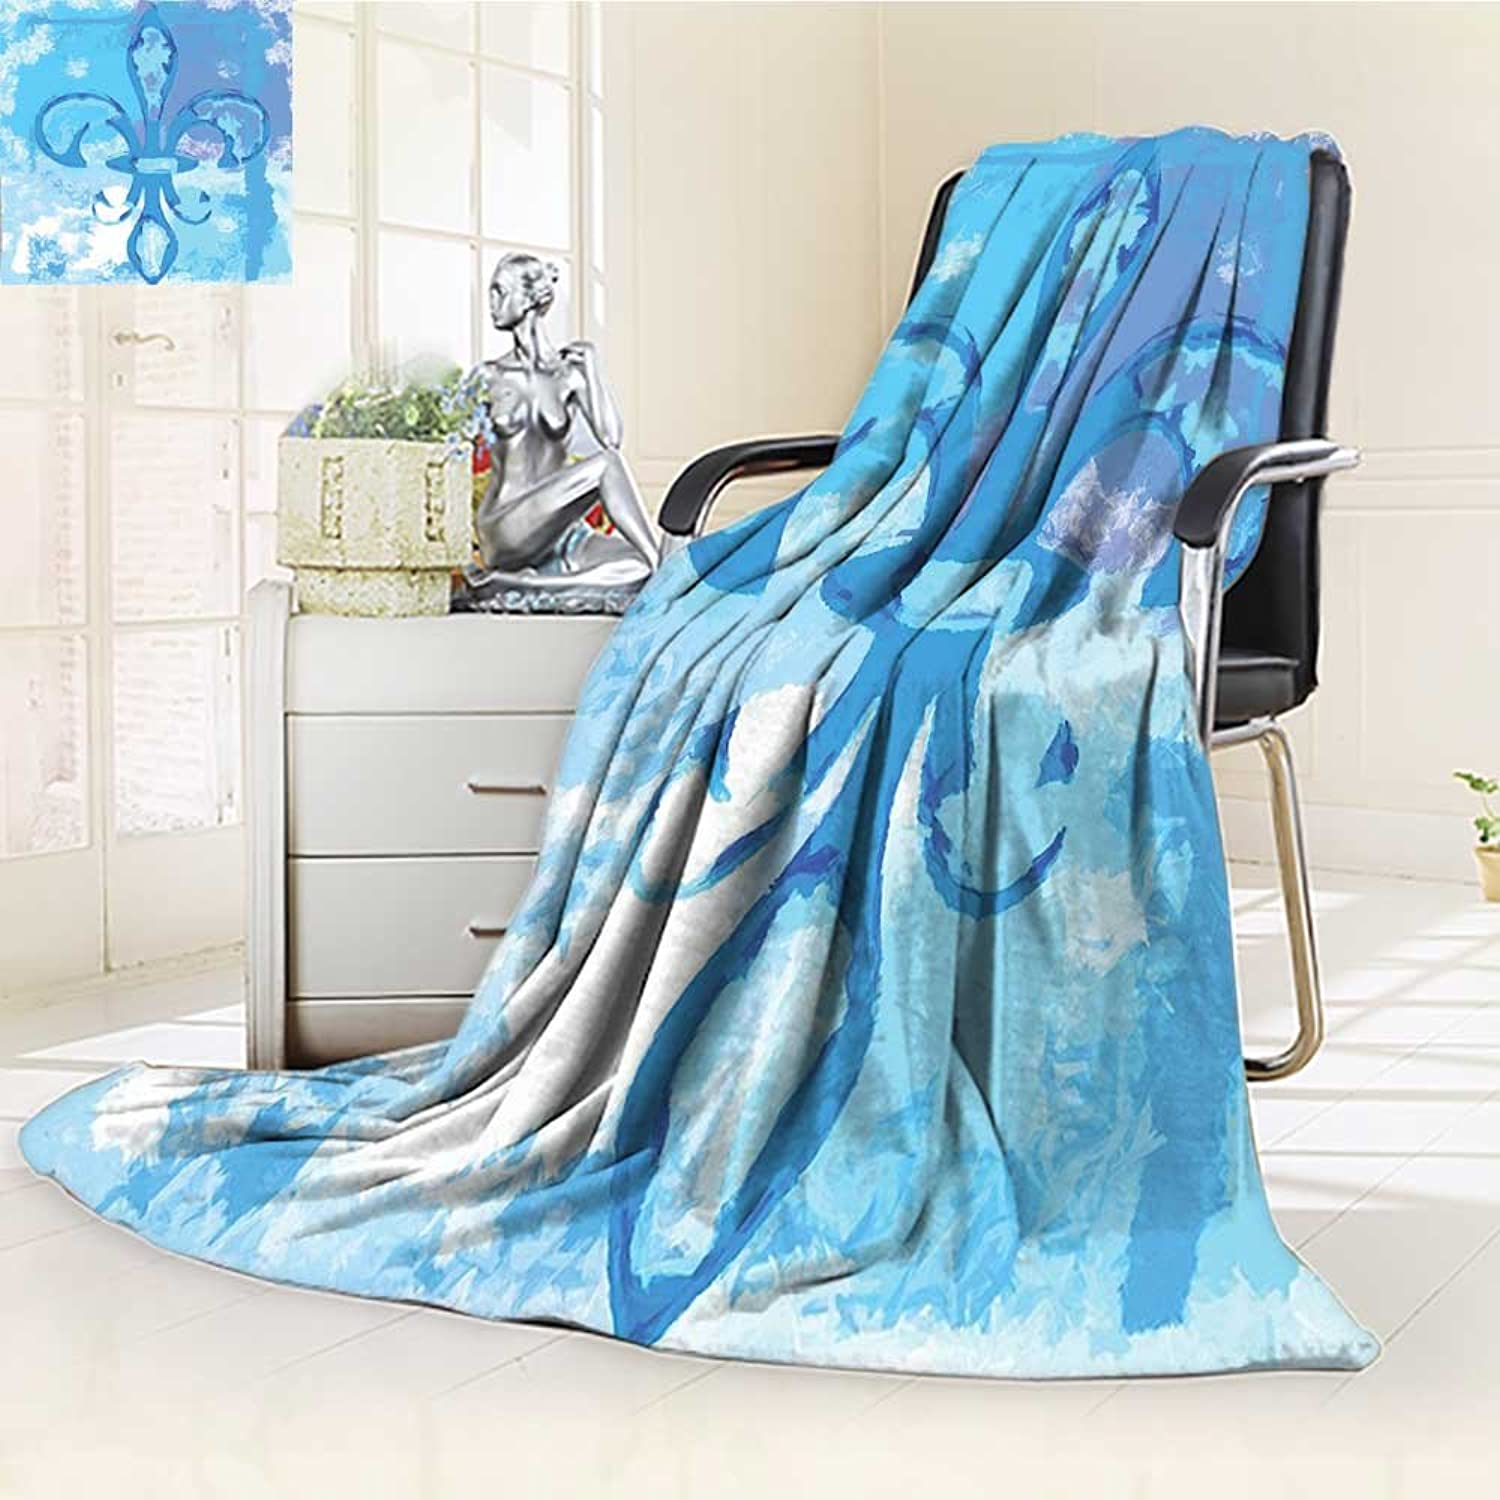 YOYIHOME Soft Warm Cozy Throw Duplex Printed Blanket Fleur De Lis of Lily Flower Like Frozen Heredic Nobility Emblem Queenly Style Print bluee Fuzzy Blanket s for Bed or Couch W59 x H47